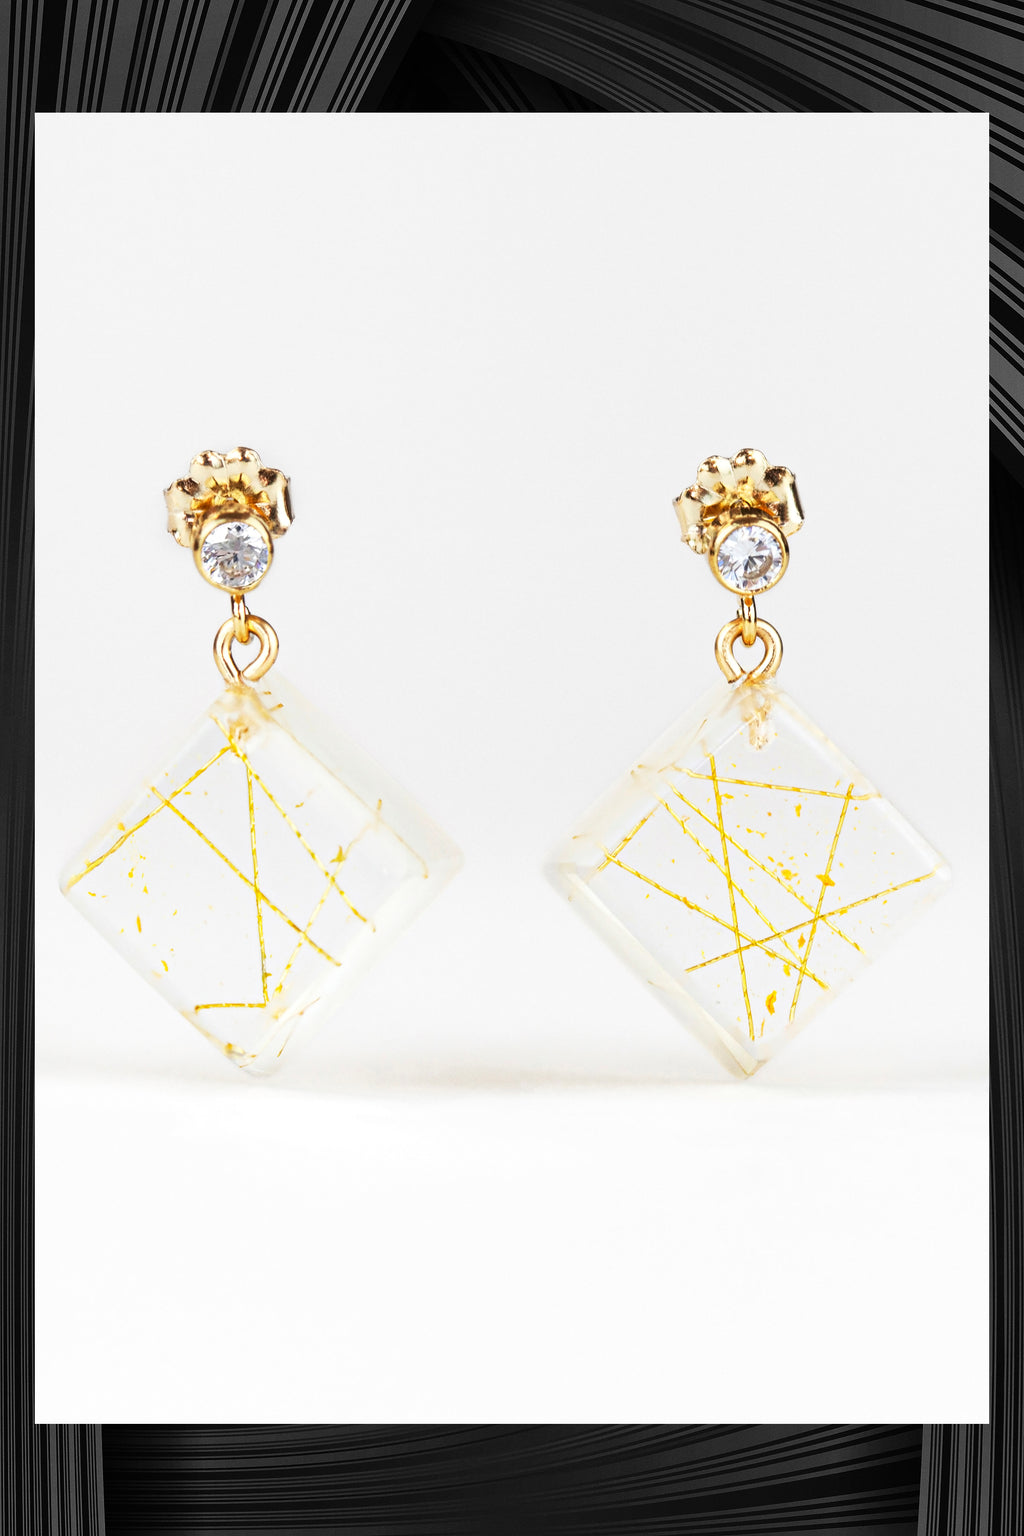 Cubic Zirconia Square Resin Drop Earrings | Free Delivery - Quick Shipping